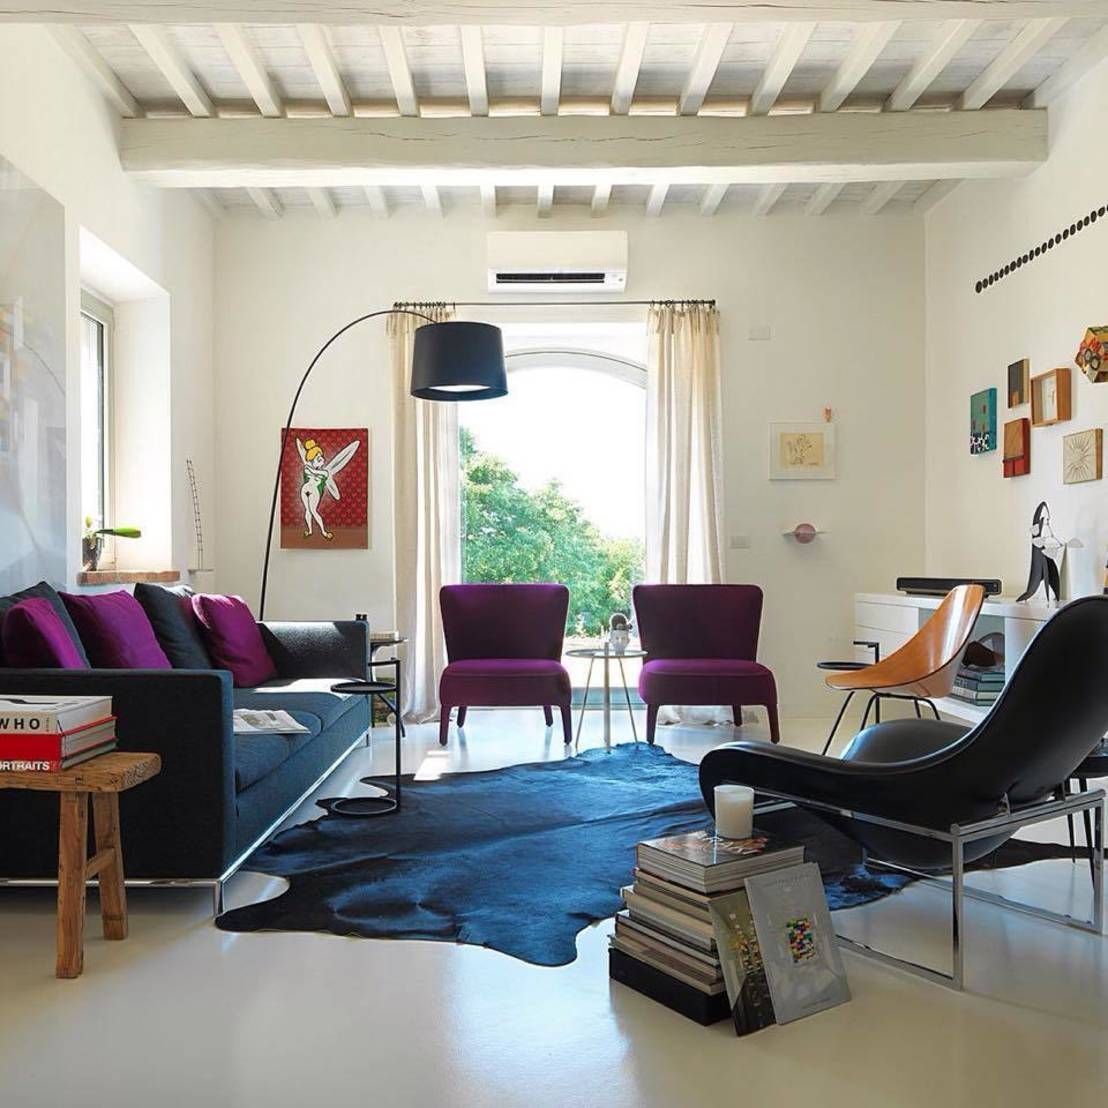 1000+ images about Idee per la casa on Pinterest